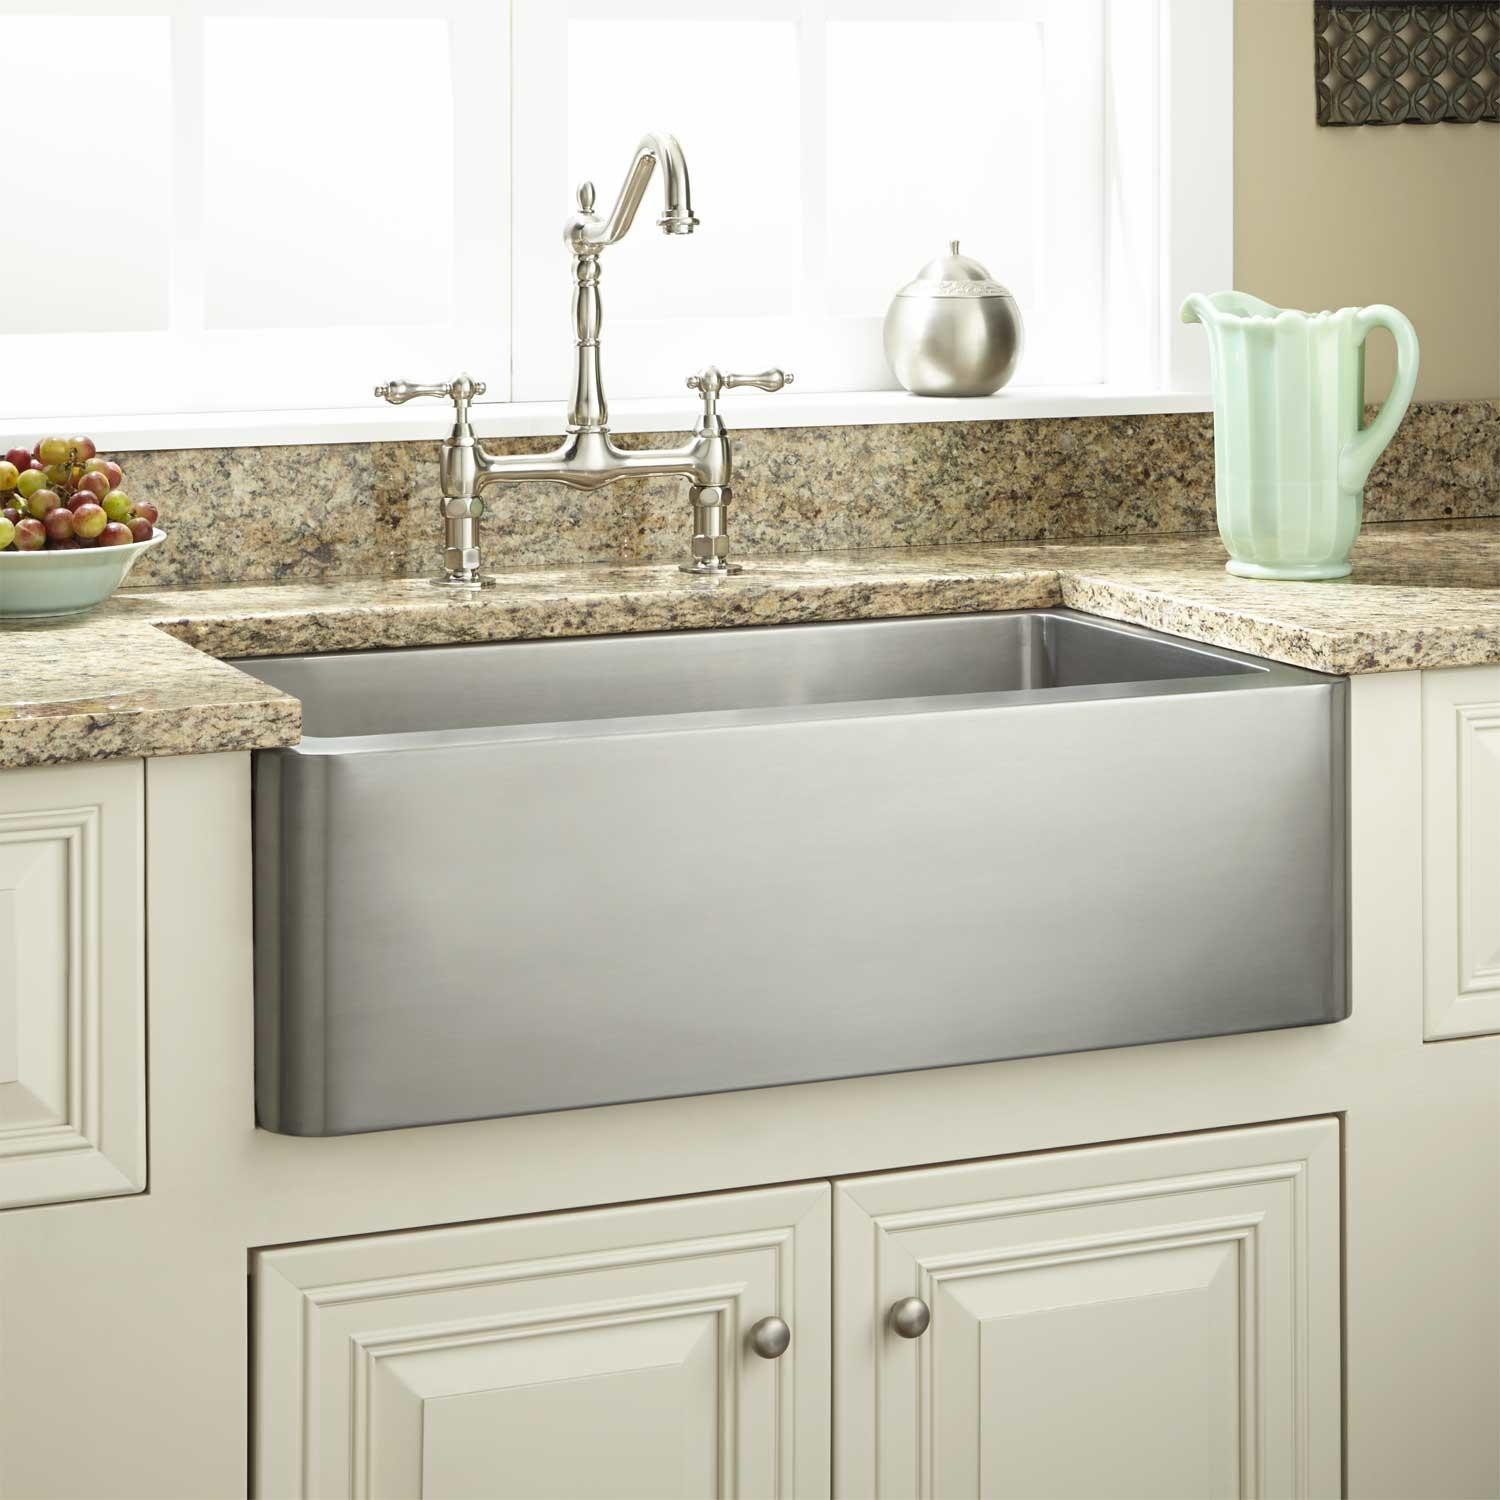 Elite Drop Gorgeous Farmhouse Style Sink Faucet Utility Sinks For Apron pertaining to Farmhouse Style Bathroom Vanity